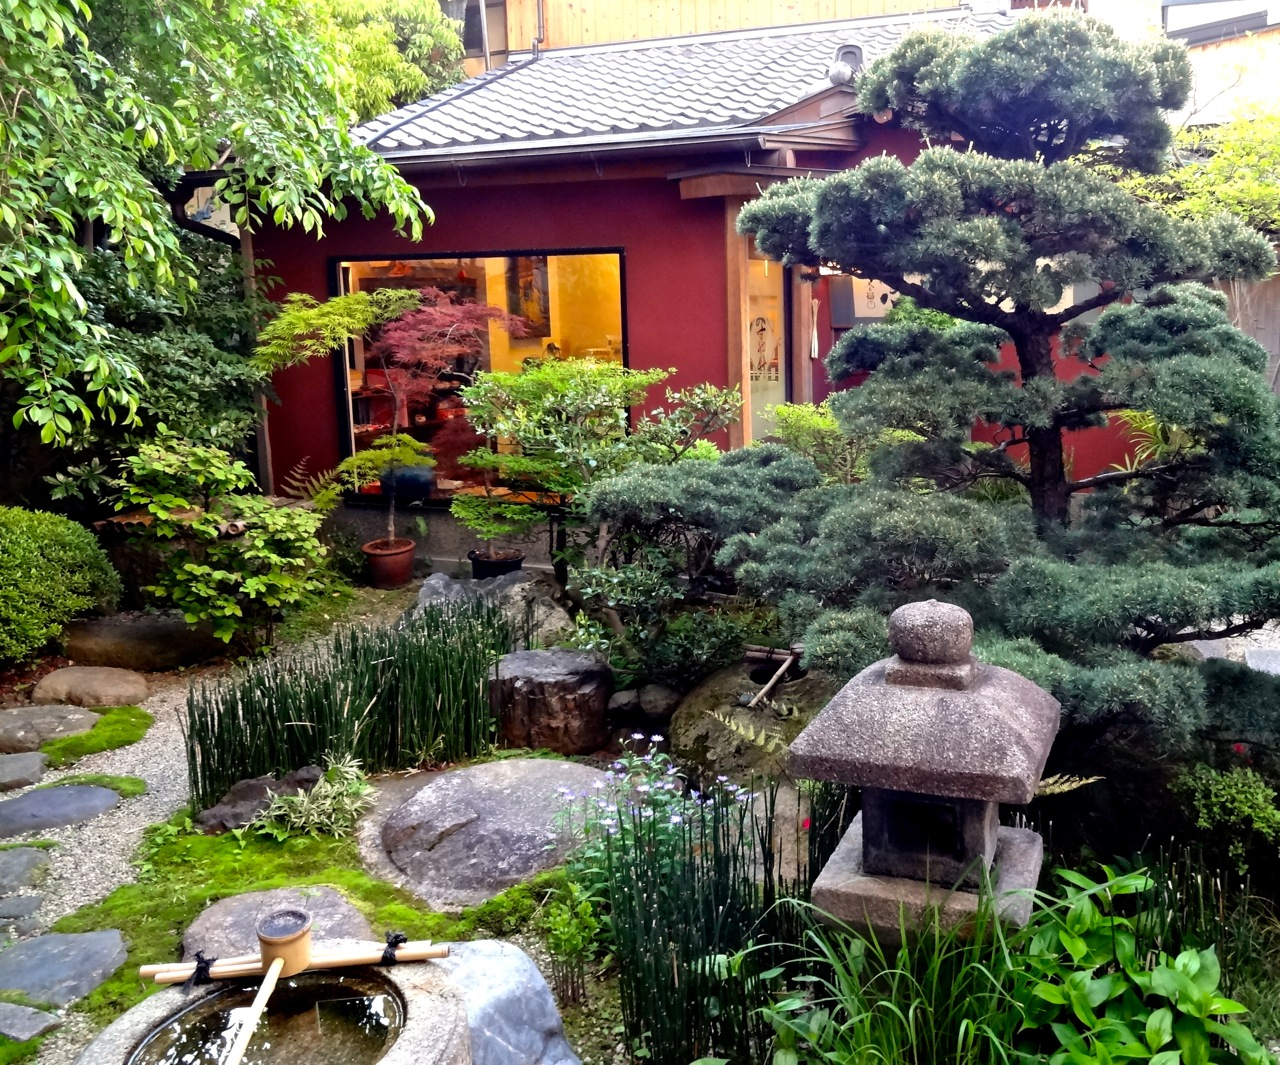 The art of the zen garden travel the world over for Japanese zen garden